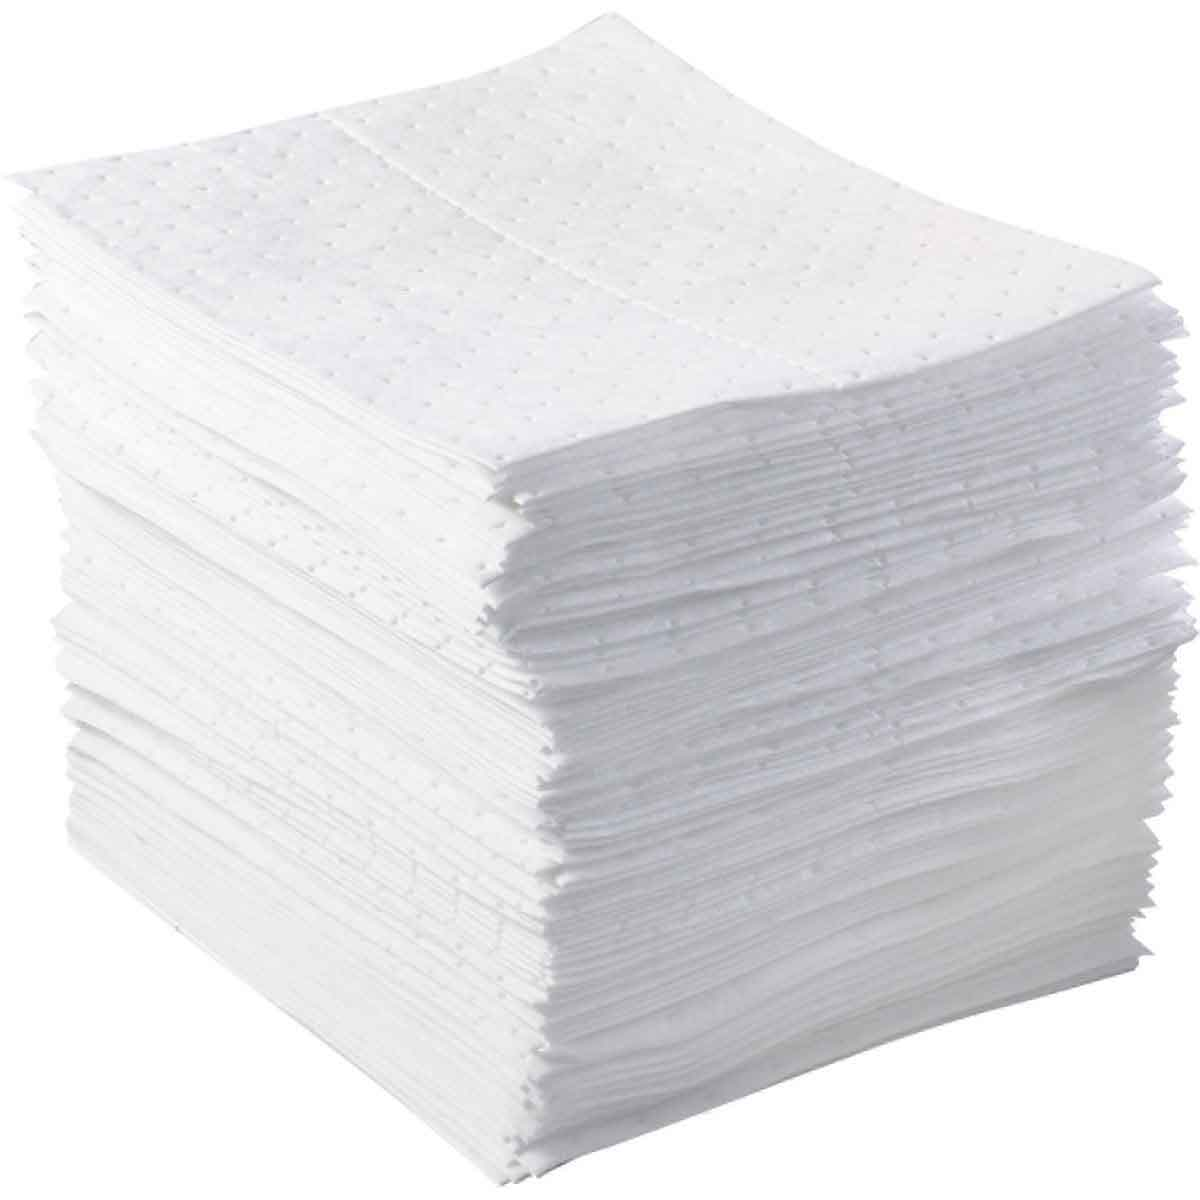 """Absorbent Spill Pads - Oil Only - 15 """"x 17"""" - White (100/bundle)"""